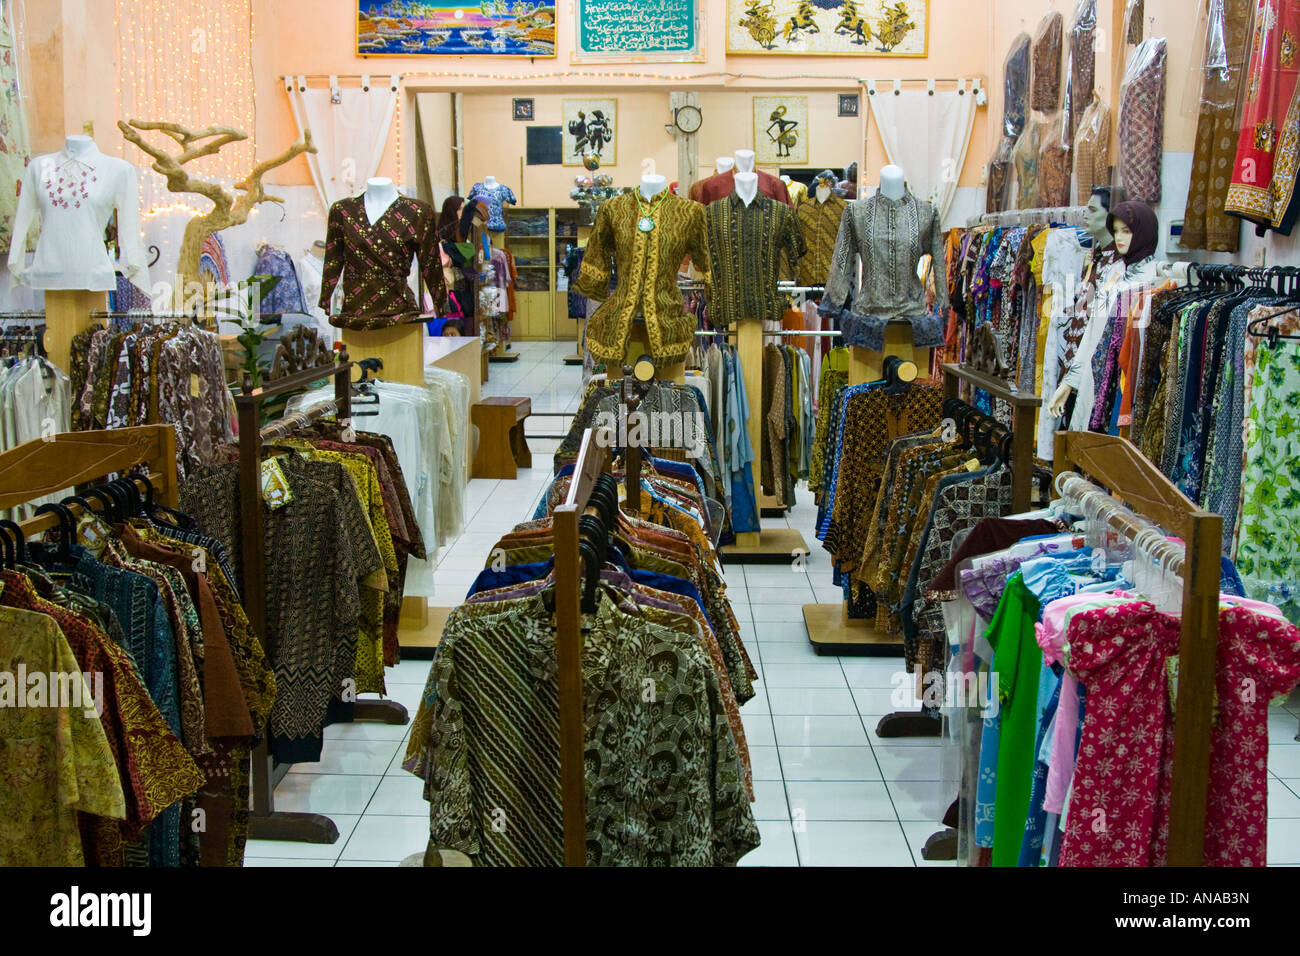 Fabric clothing store Clothes stores